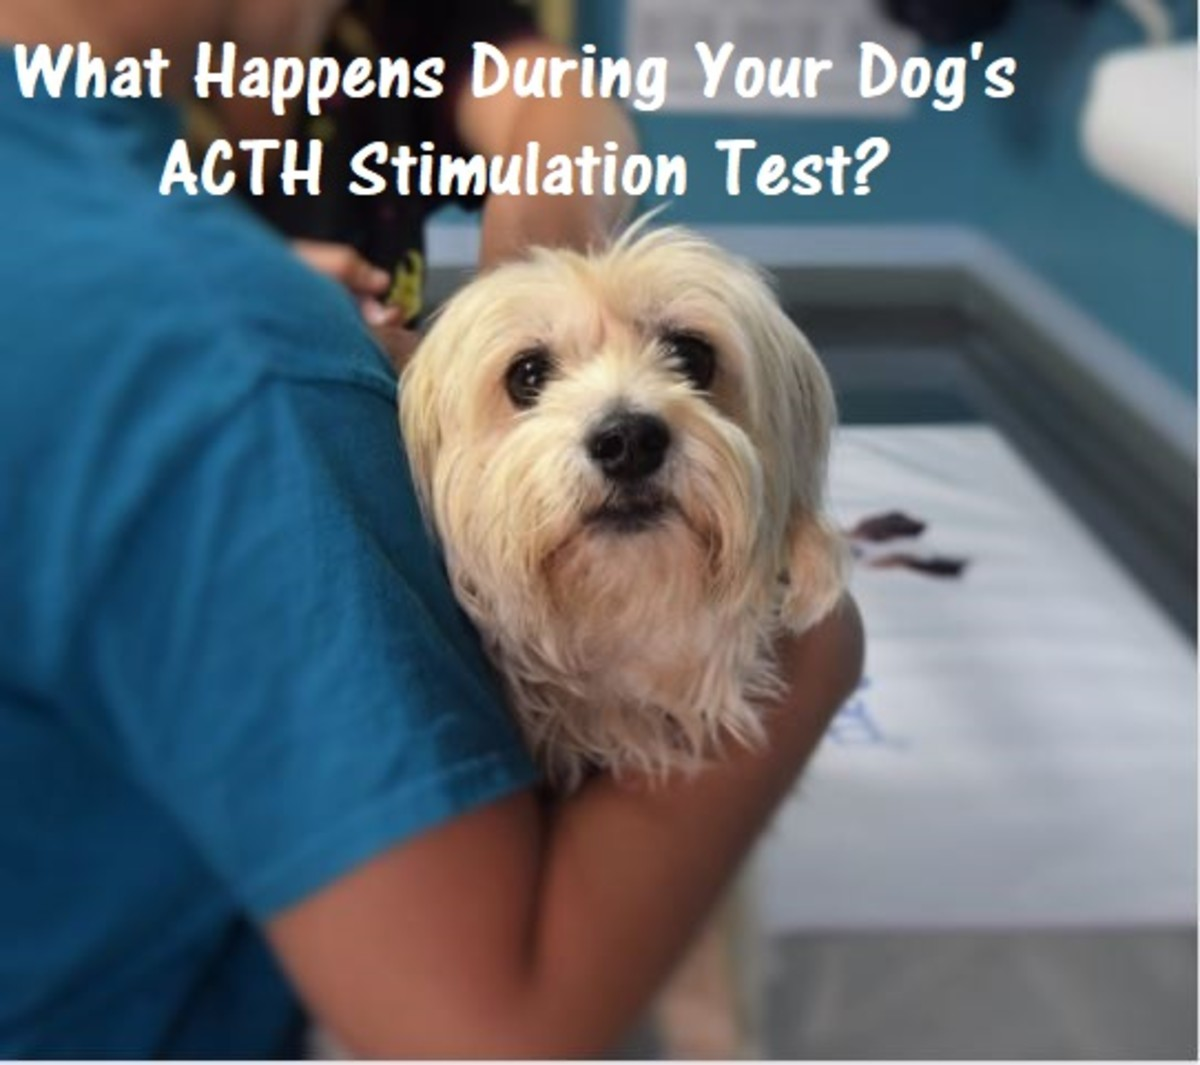 what-happens-during-your-dogs-acth-stimulation-test